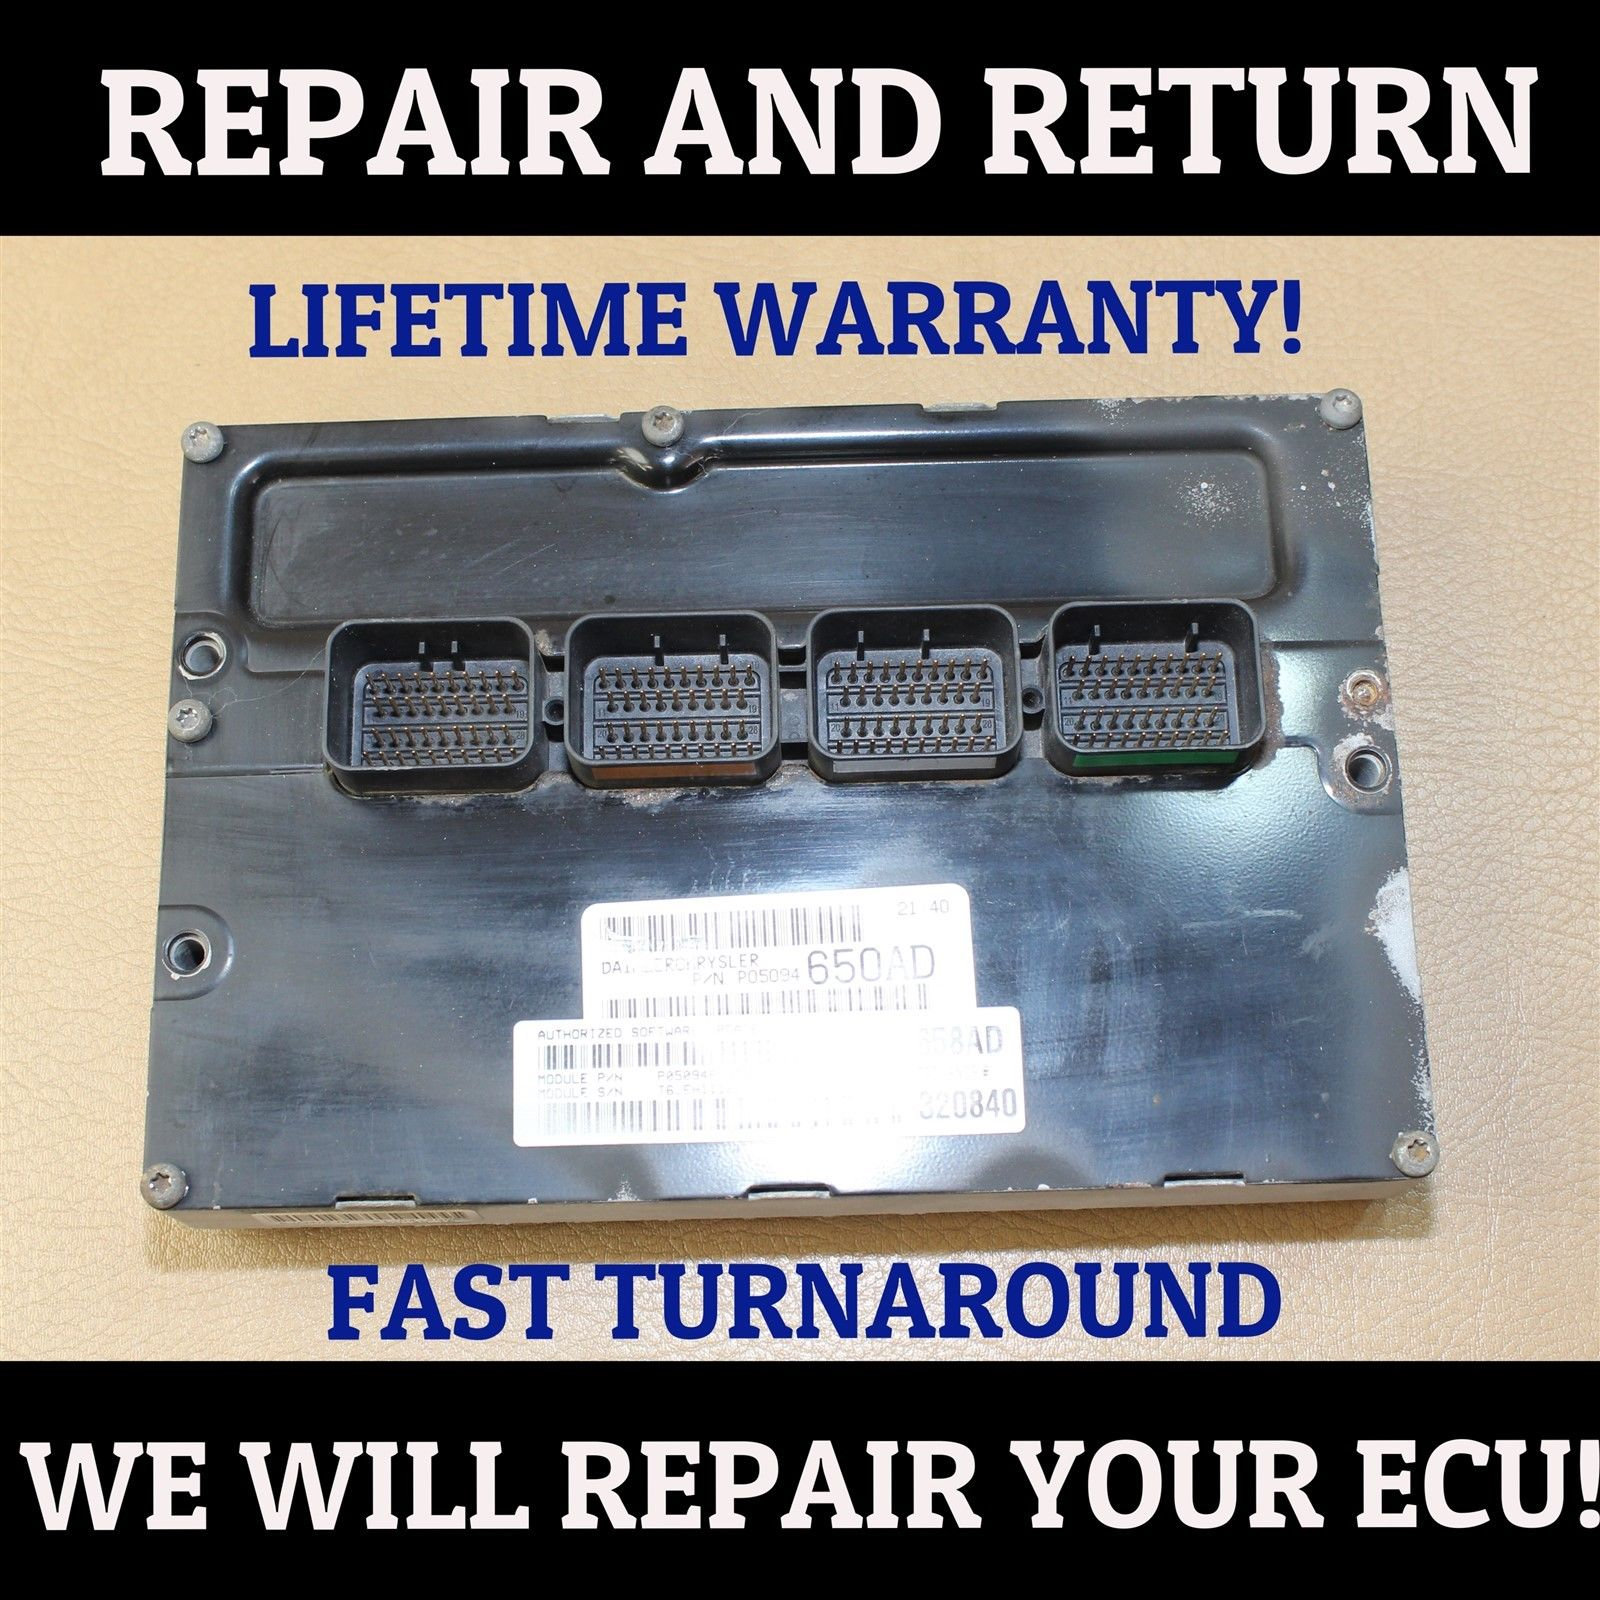 *REPAIR SERVICE* 12 <em>DODGE</em> <em>RAM</em> <em>1500</em> 2500 3500 5.7L ECU ECM PCM ENGINE COMPUTER